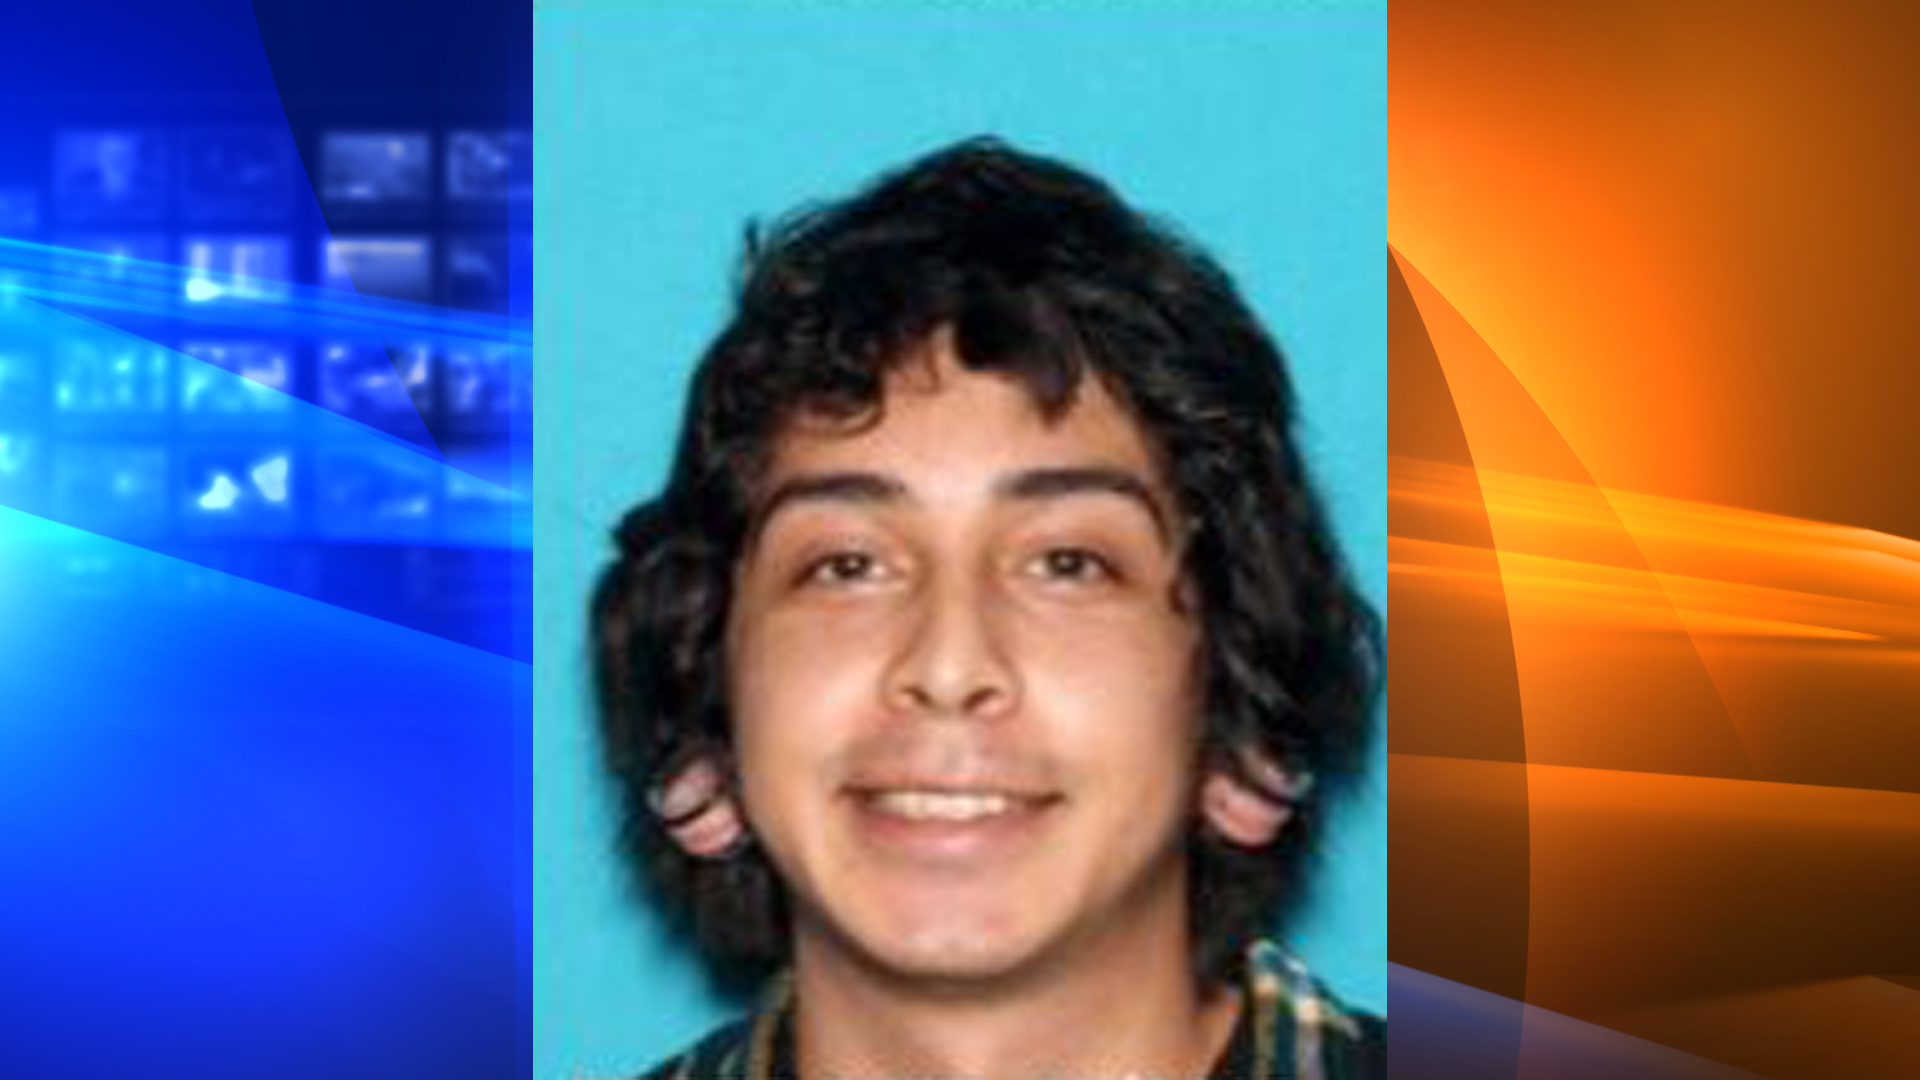 Victor Hugo Sosa is shown in a 2017 photo released by the Los Angeles County Sheriff's Department on June 29, 2021.